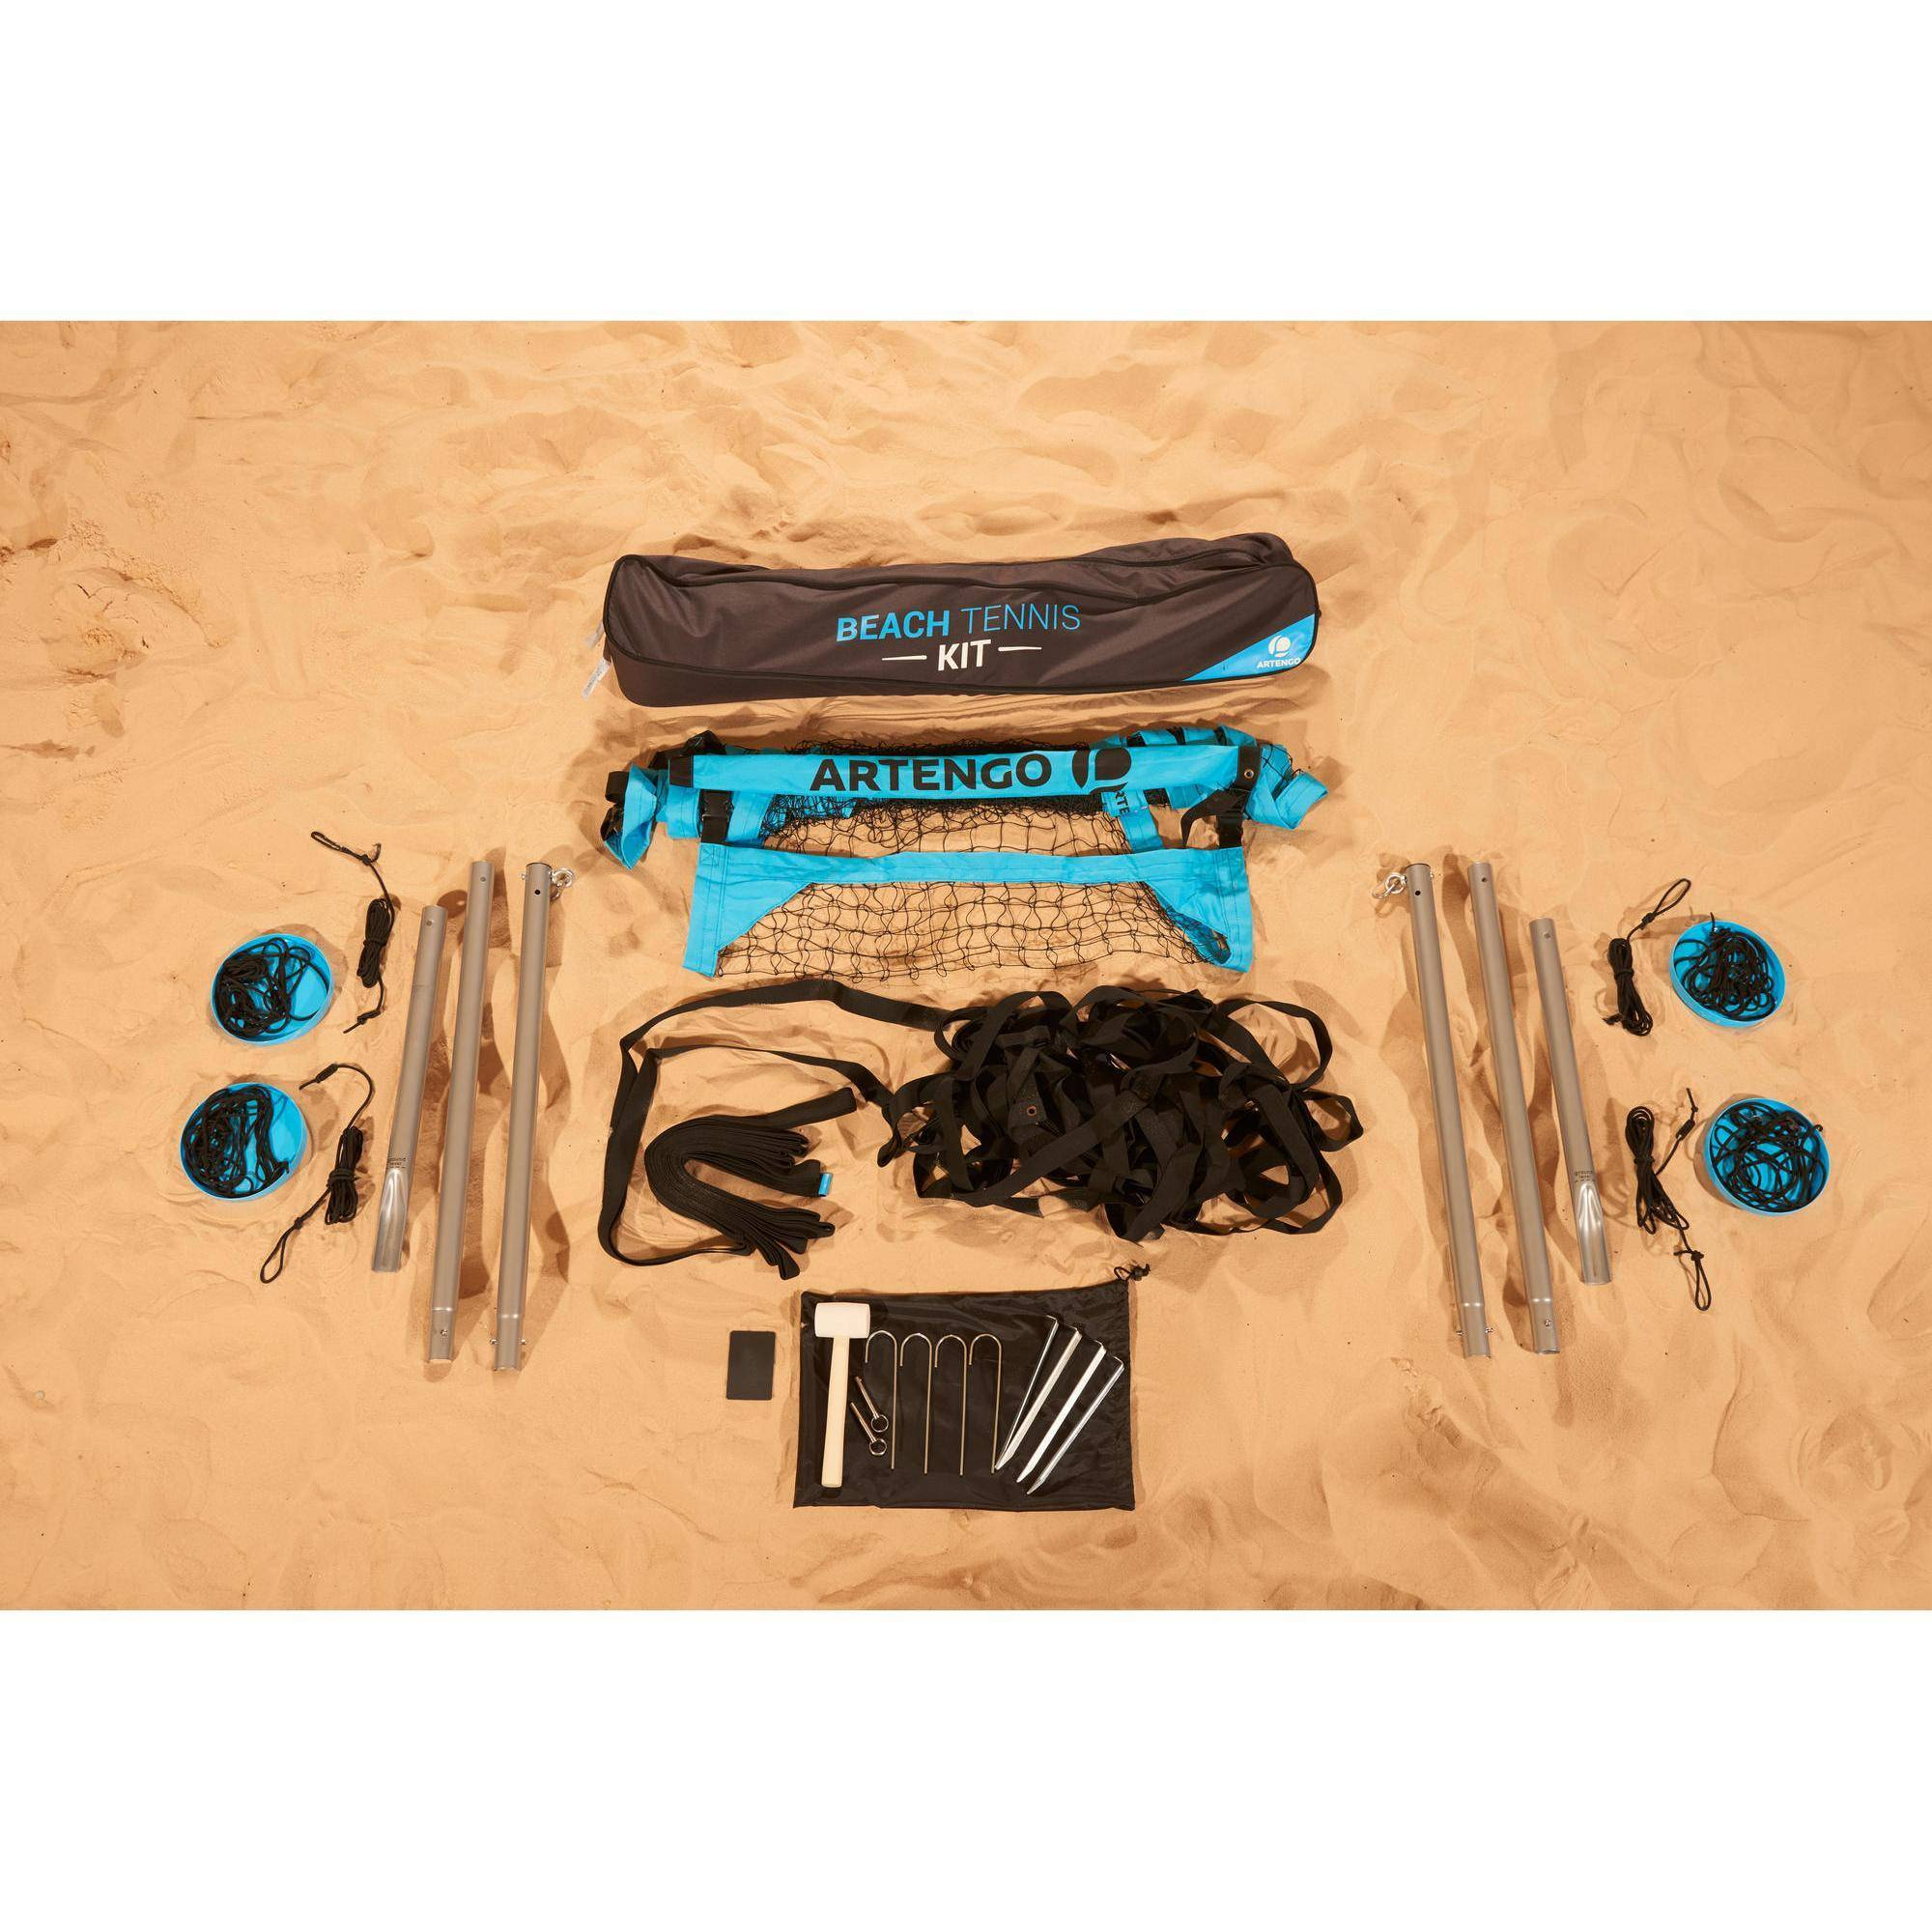 Artengo Kit Beach Tennis (poteaux, filets - Artengo